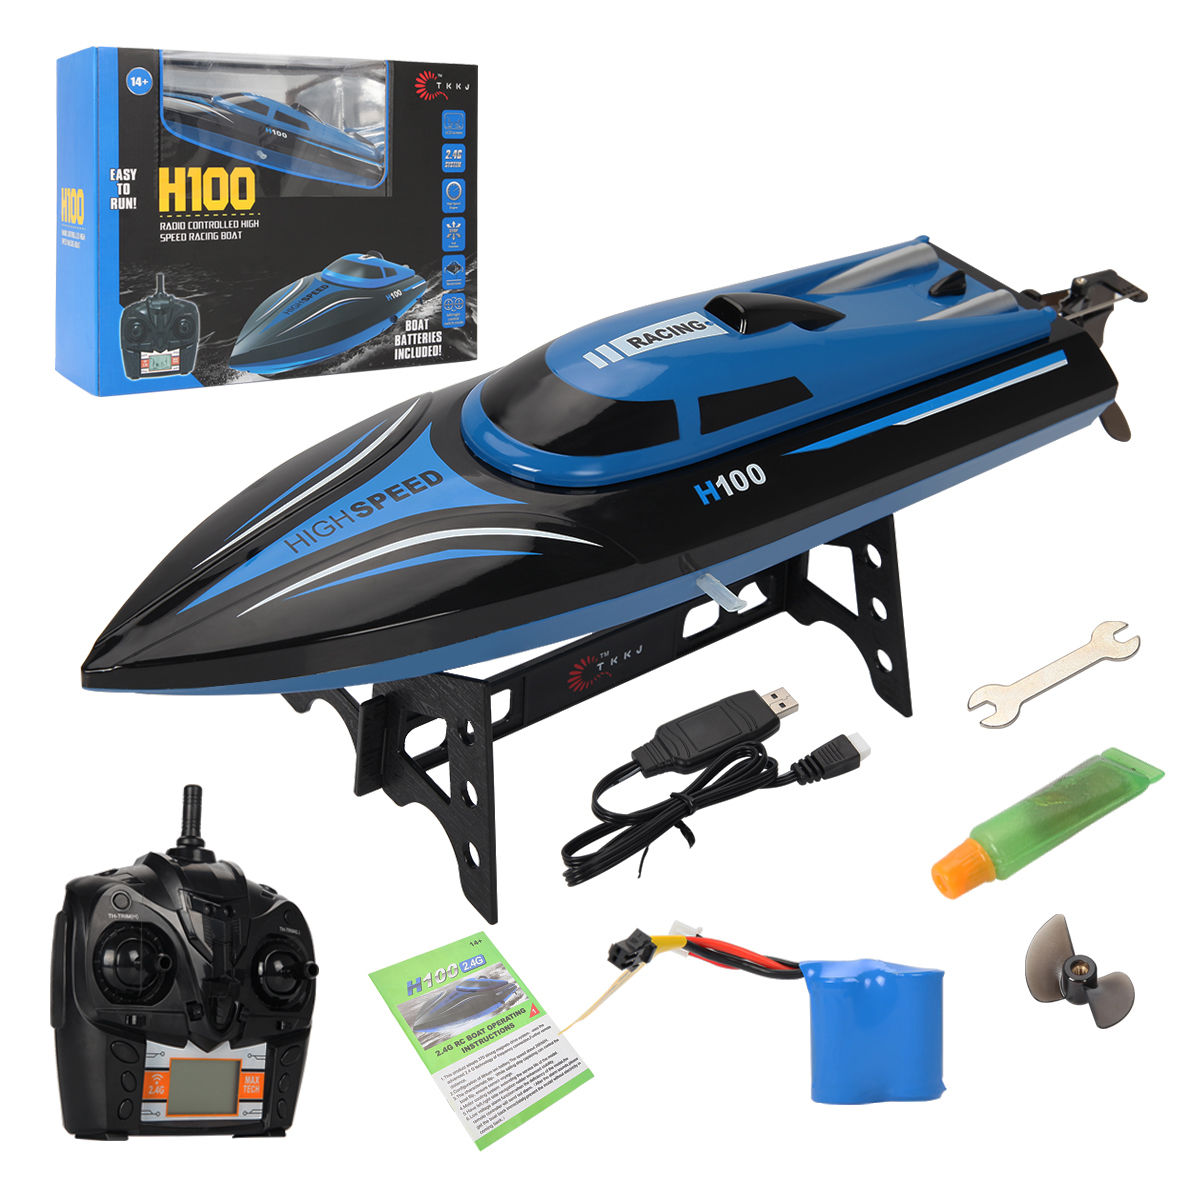 H100 2.4G RC High Speed Racing Boat 180� Flip Radio Controlled Electric Toy Gift by Goplus